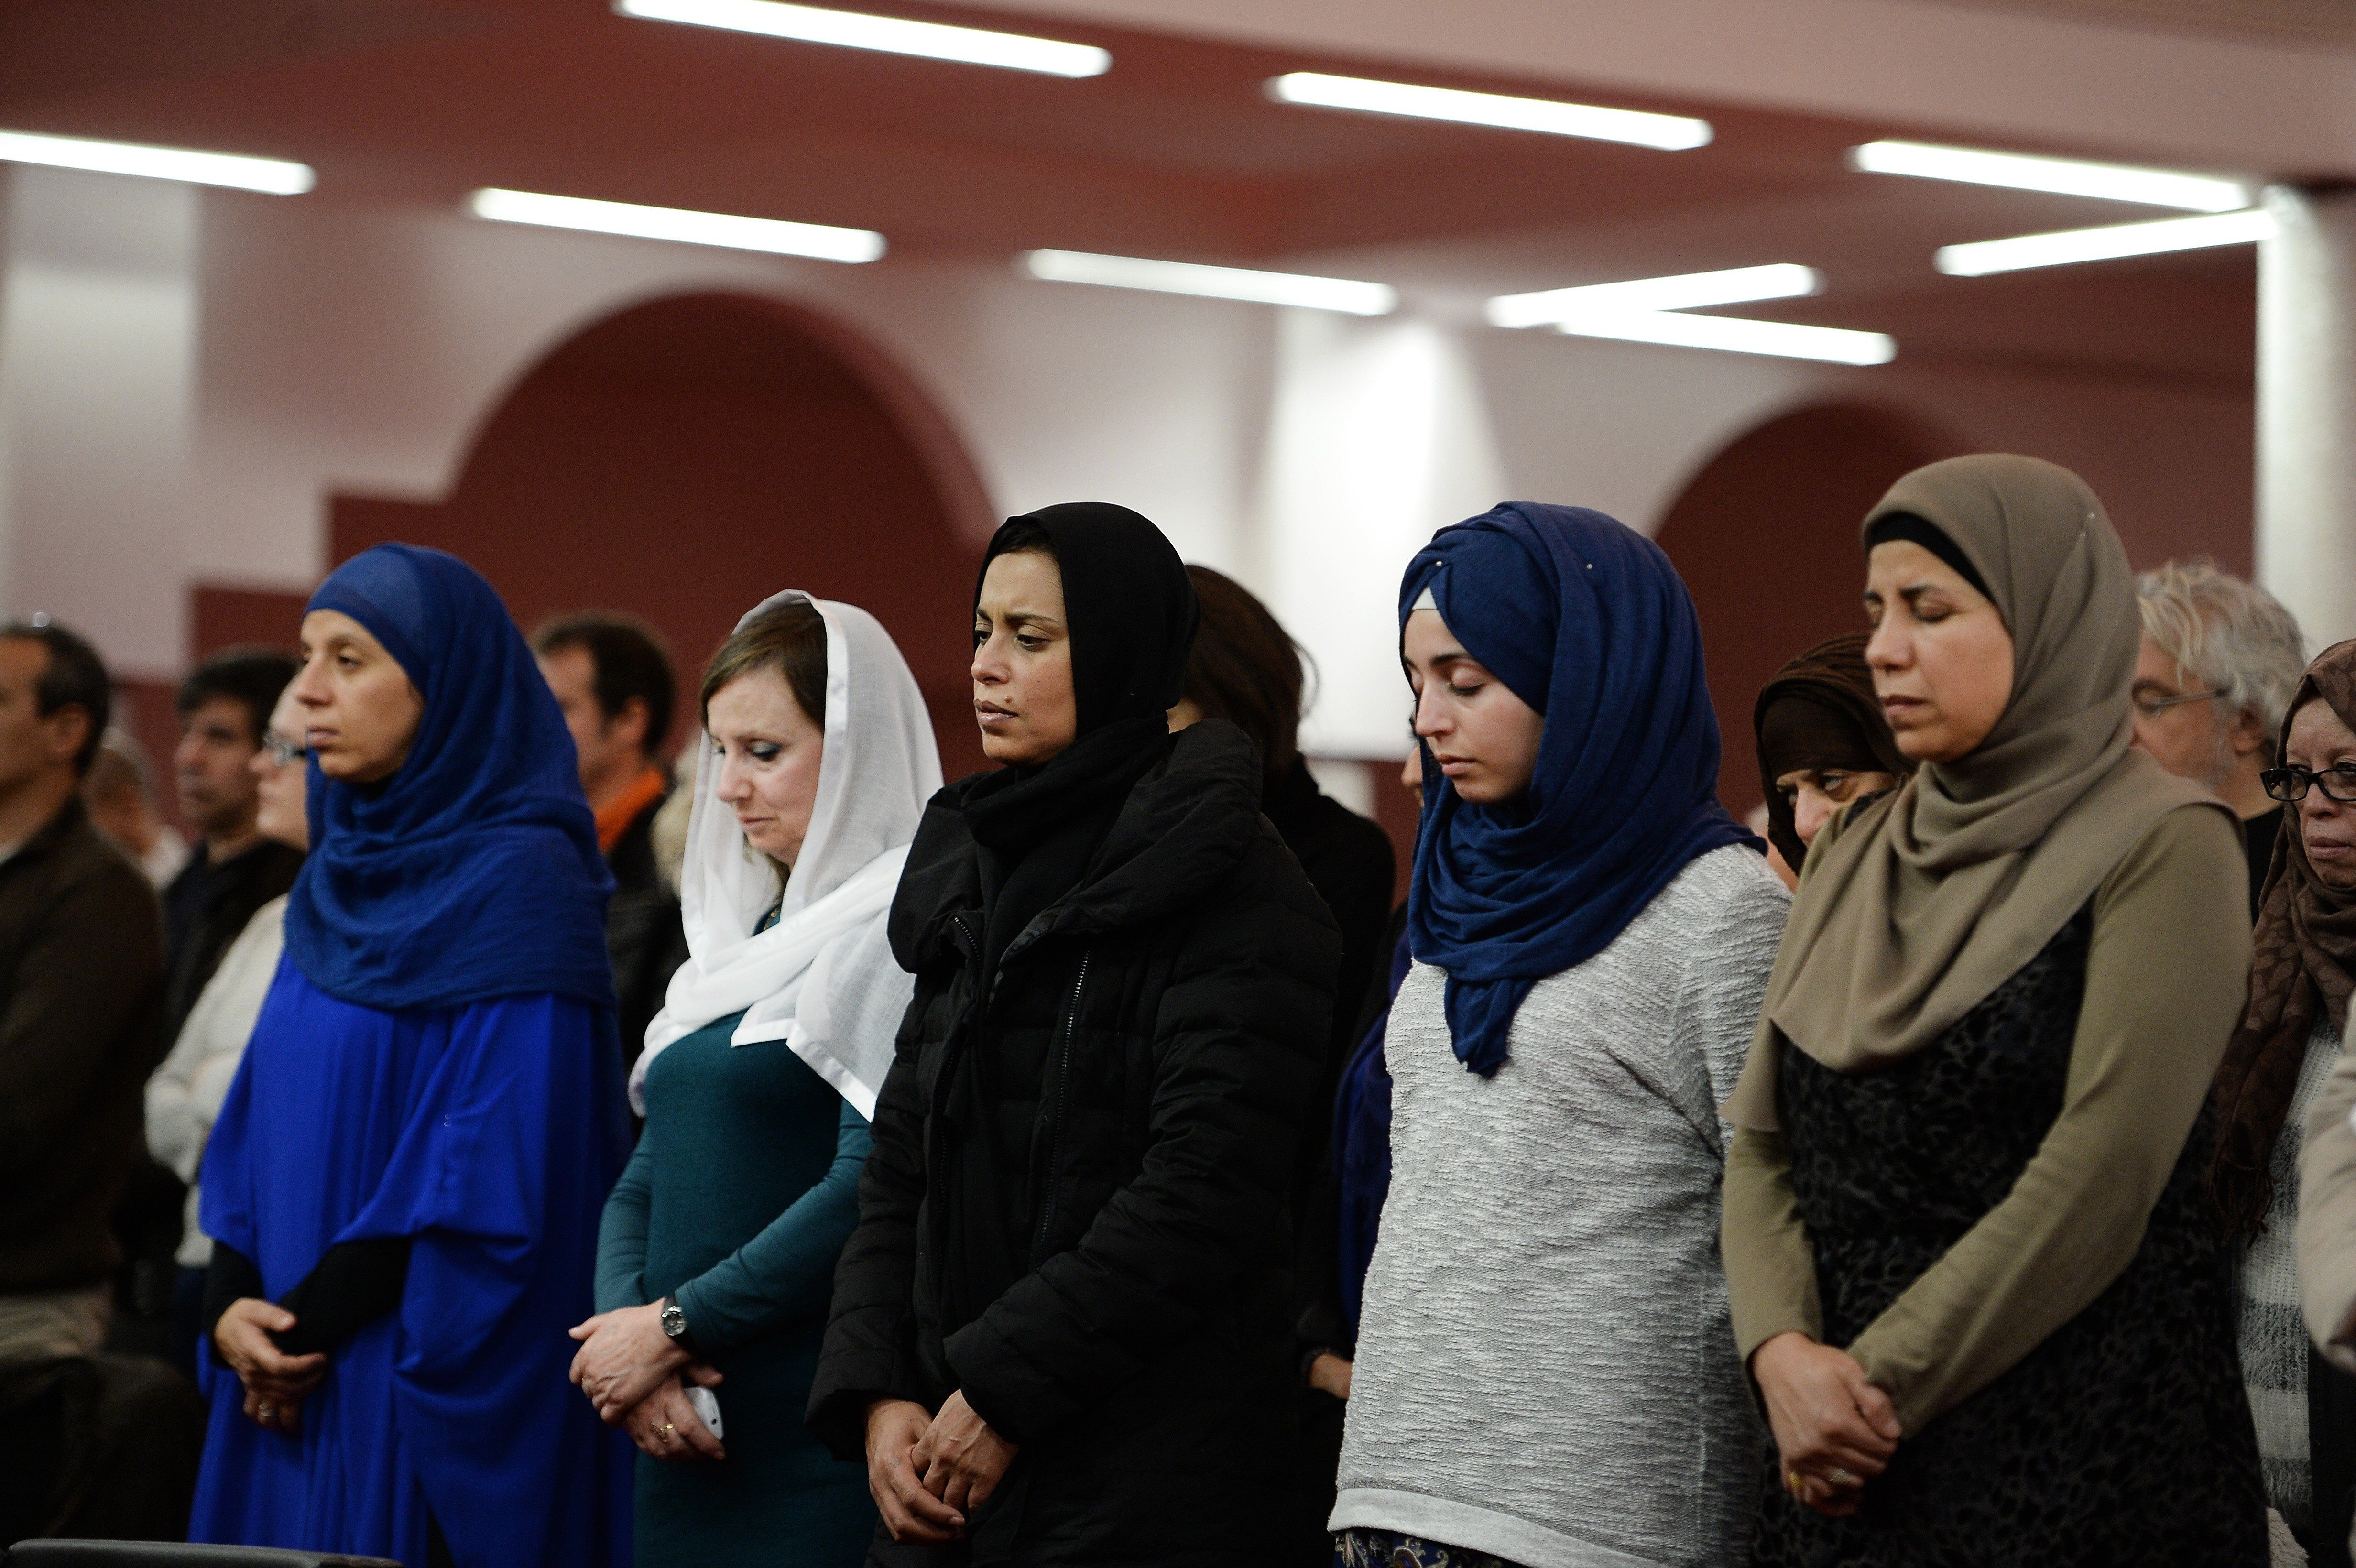 pictures Extremists target young Muslim women